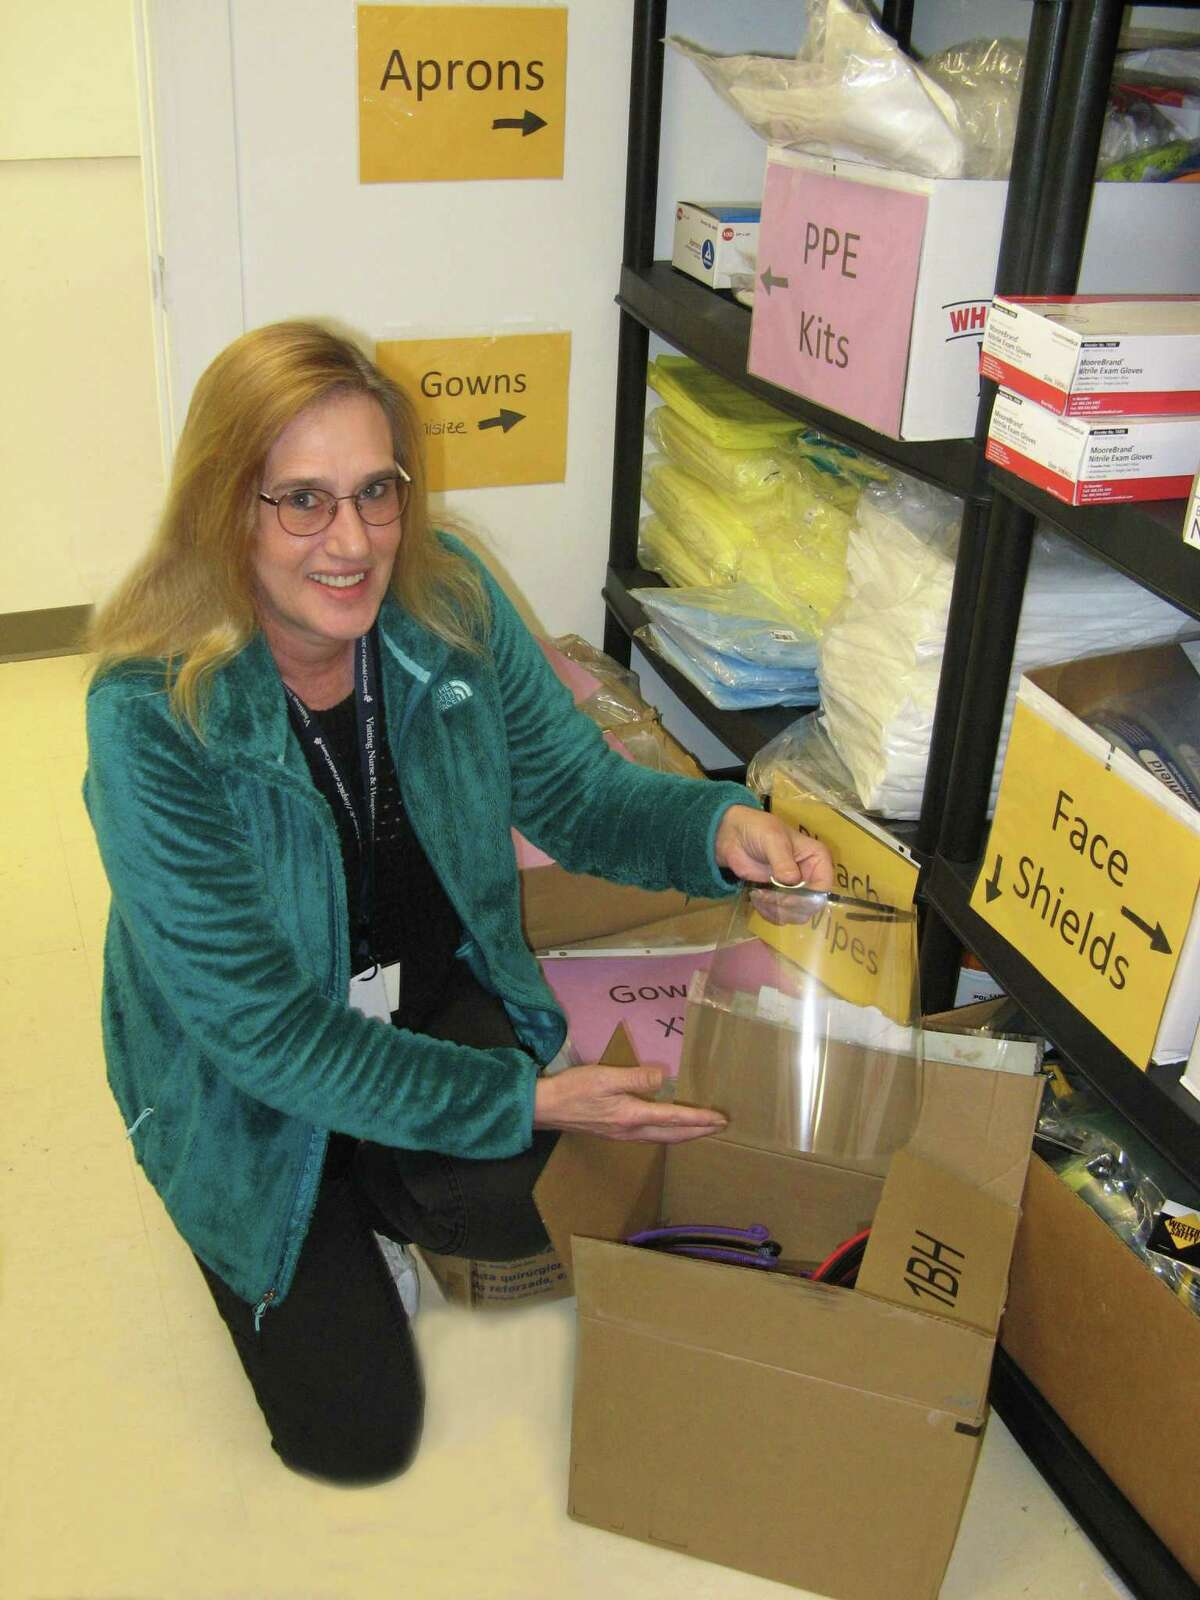 Ellen Dobson opens a box of face shields donated to Visiting Nurse & Hospice of Fairfield County by the Wilton Health Department.